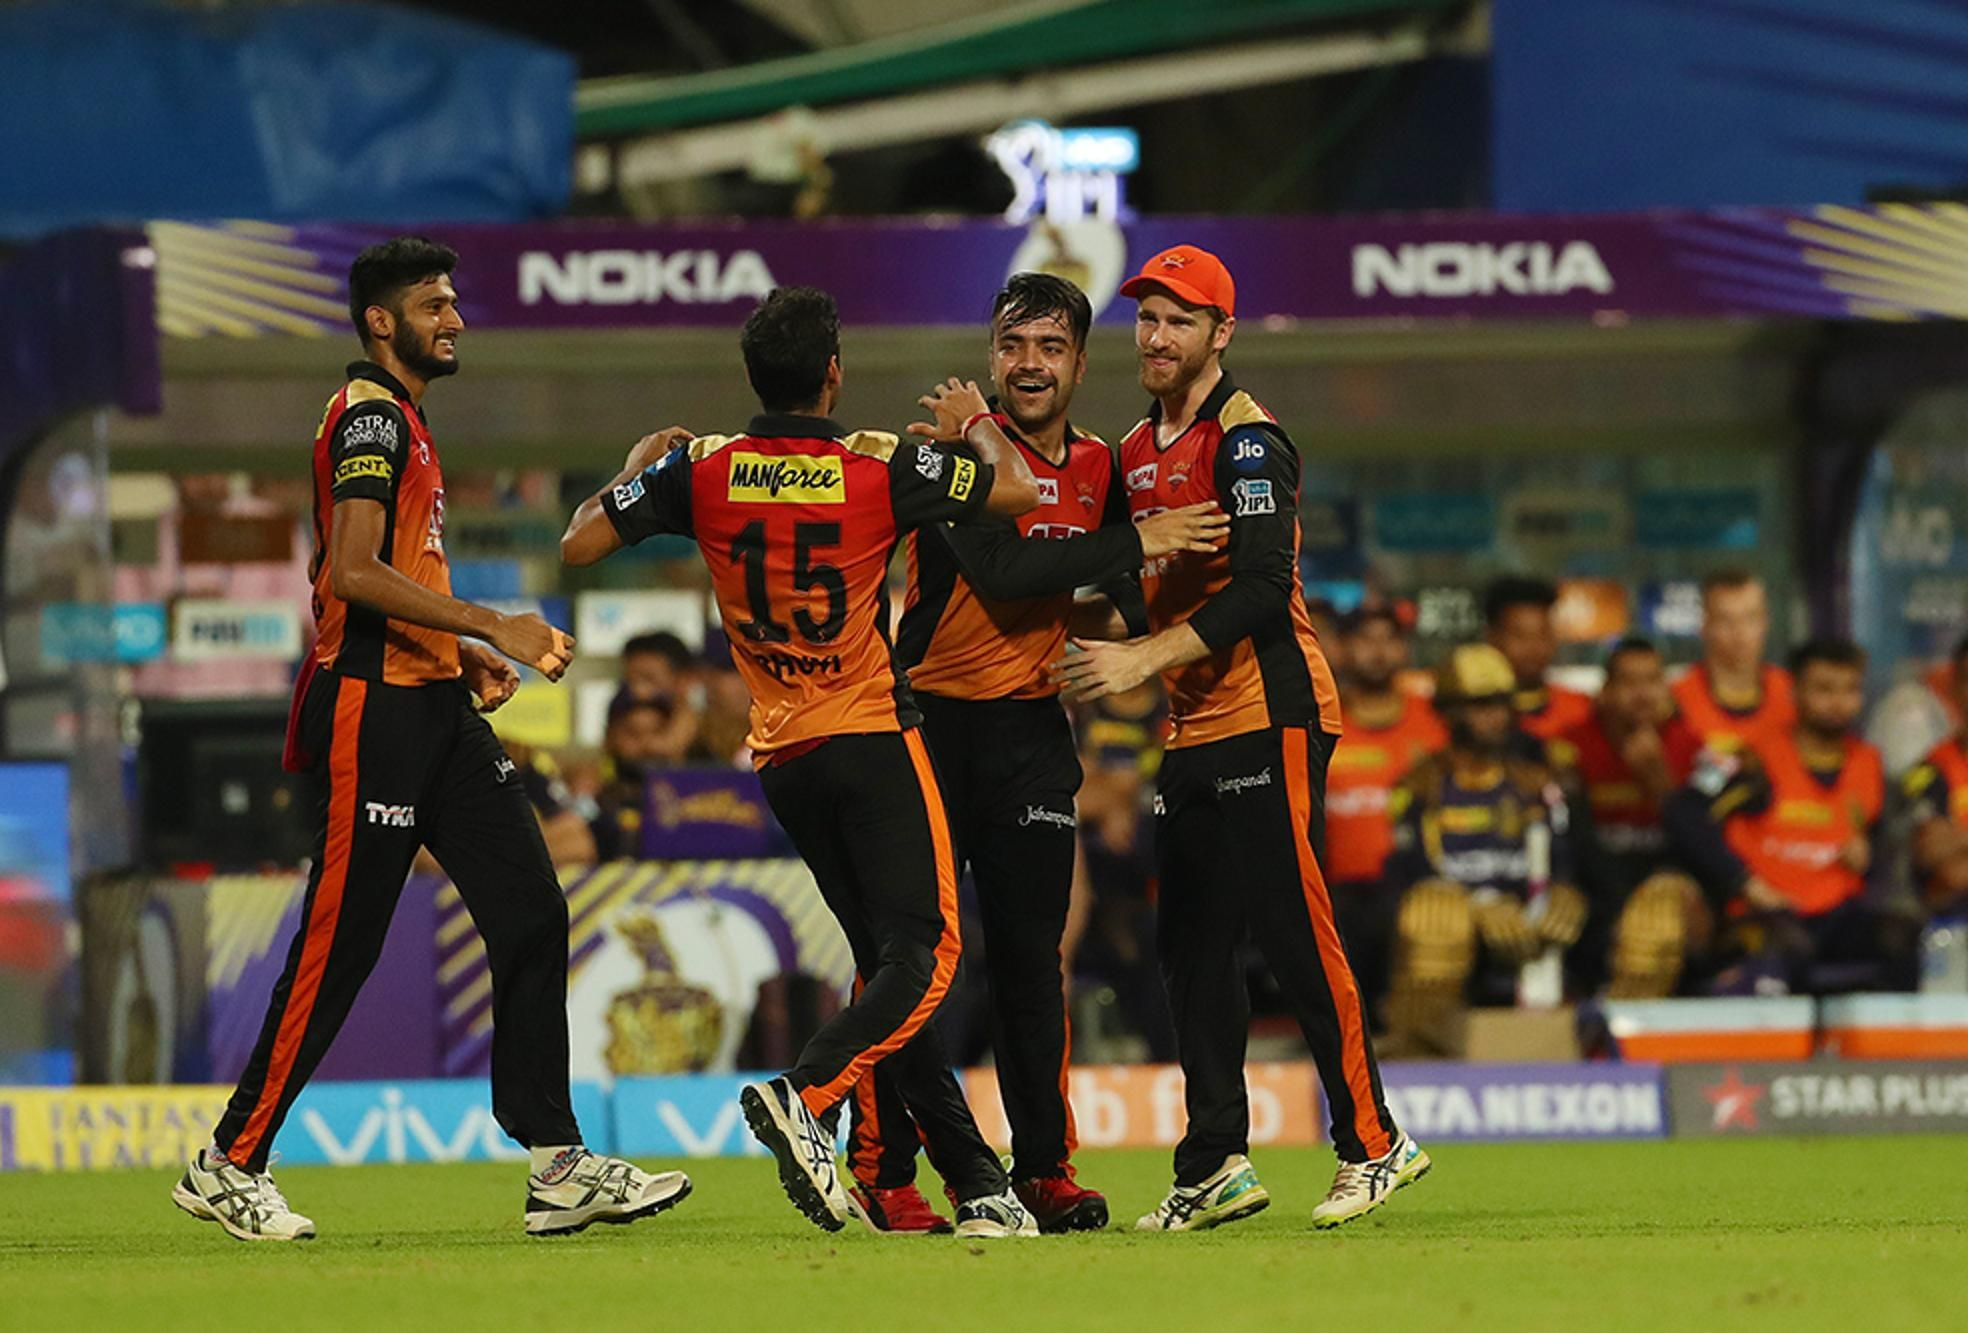 IPL 2018 Final, Venue, Date and Timing: Sunrisers Hyderabad's road to final